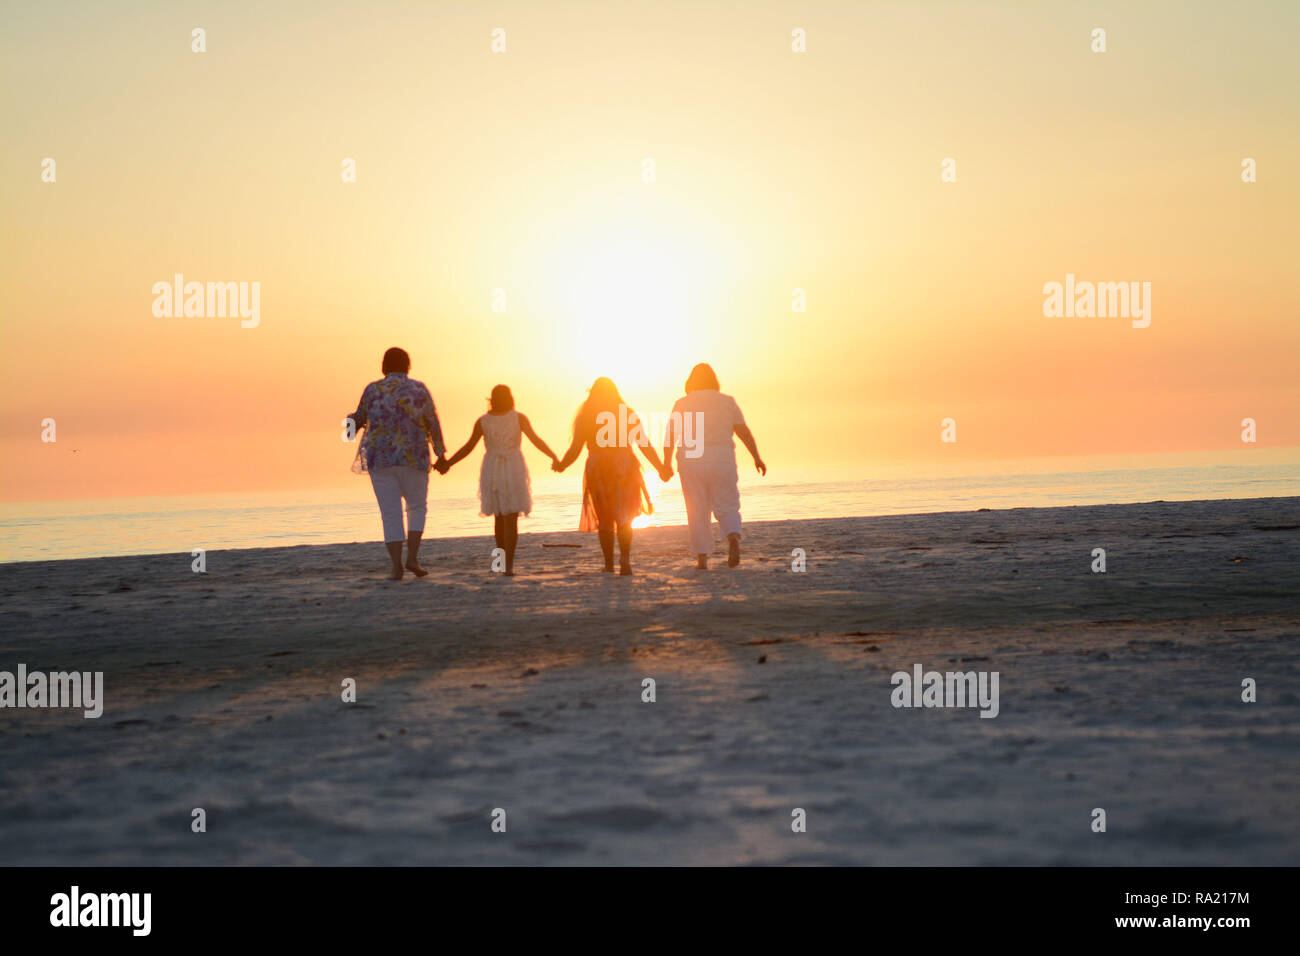 Happy Loving Family Holding Hands and Embracing While Facing the Bright Orange Yellow Sunset over the Ocean at the Florida Beach Horizon Stock Photo